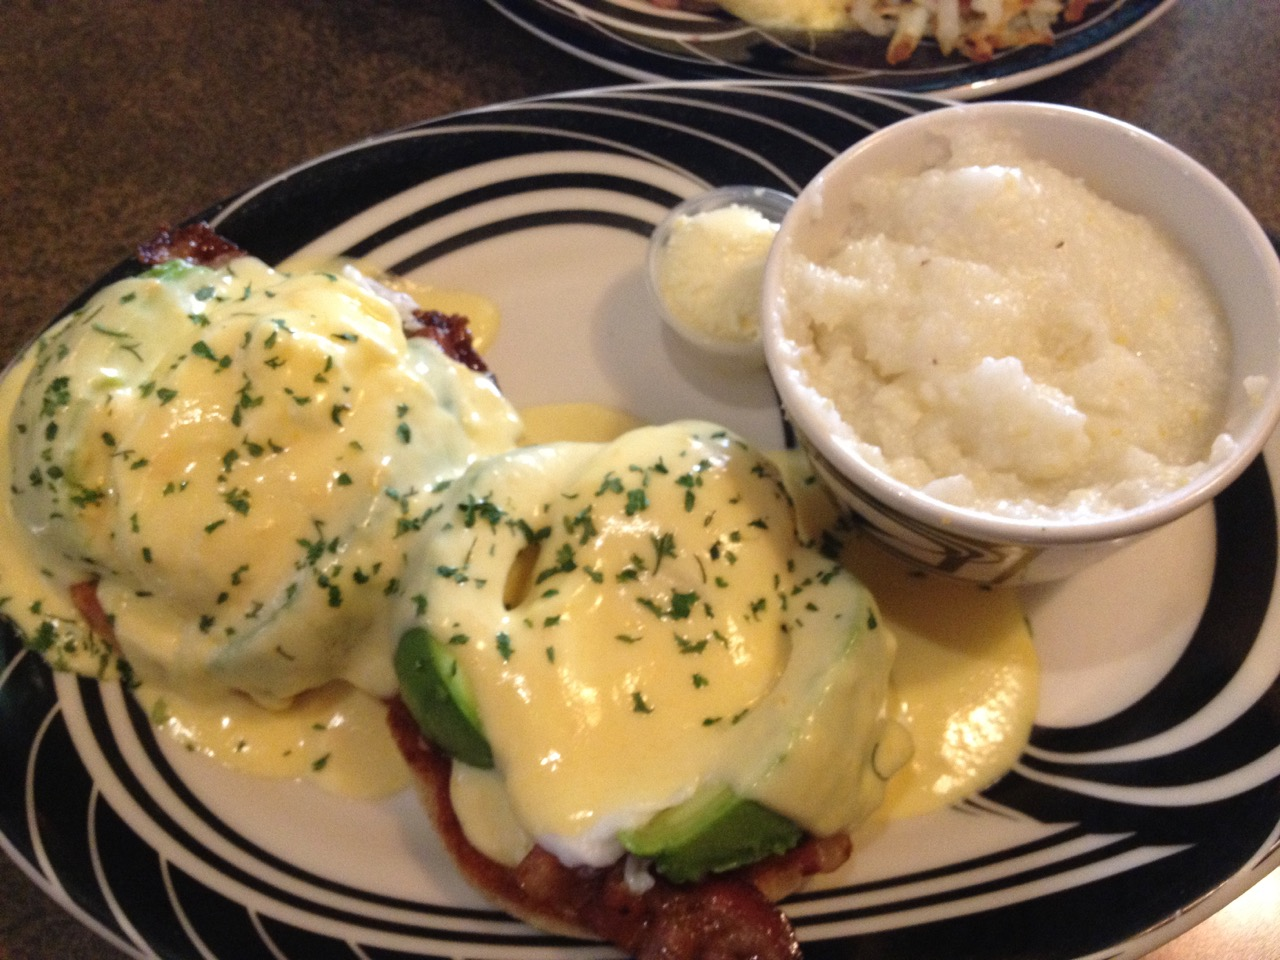 Breakfast at Sterling's – December 21 2013